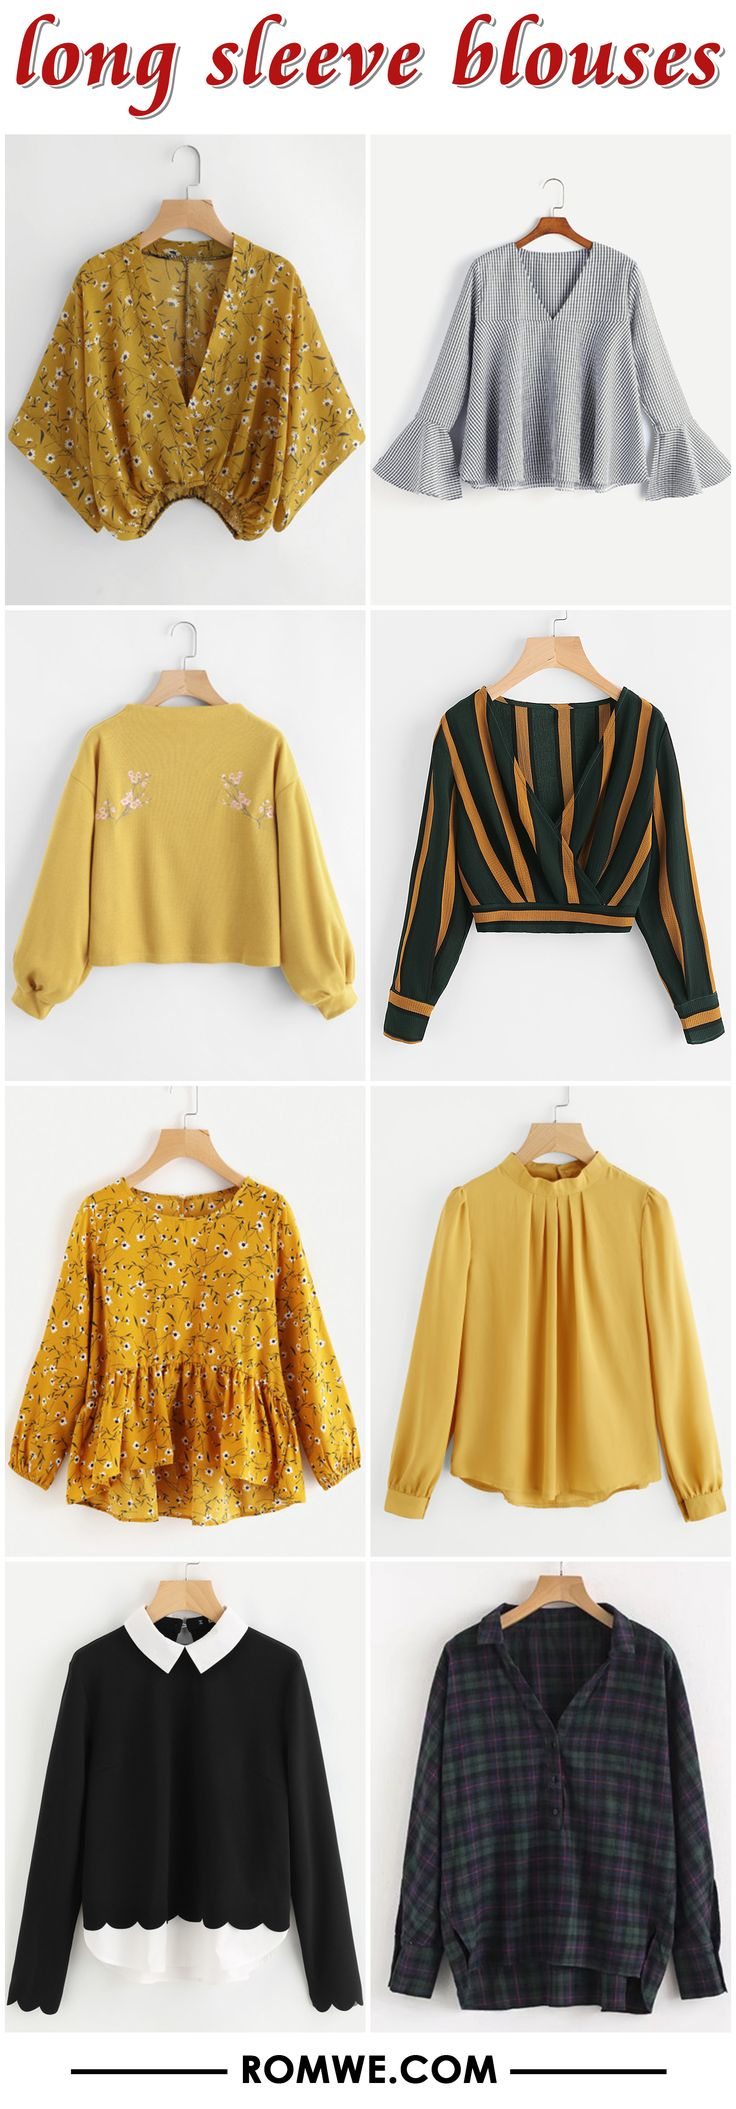 long sleeve blouses from romwe.com